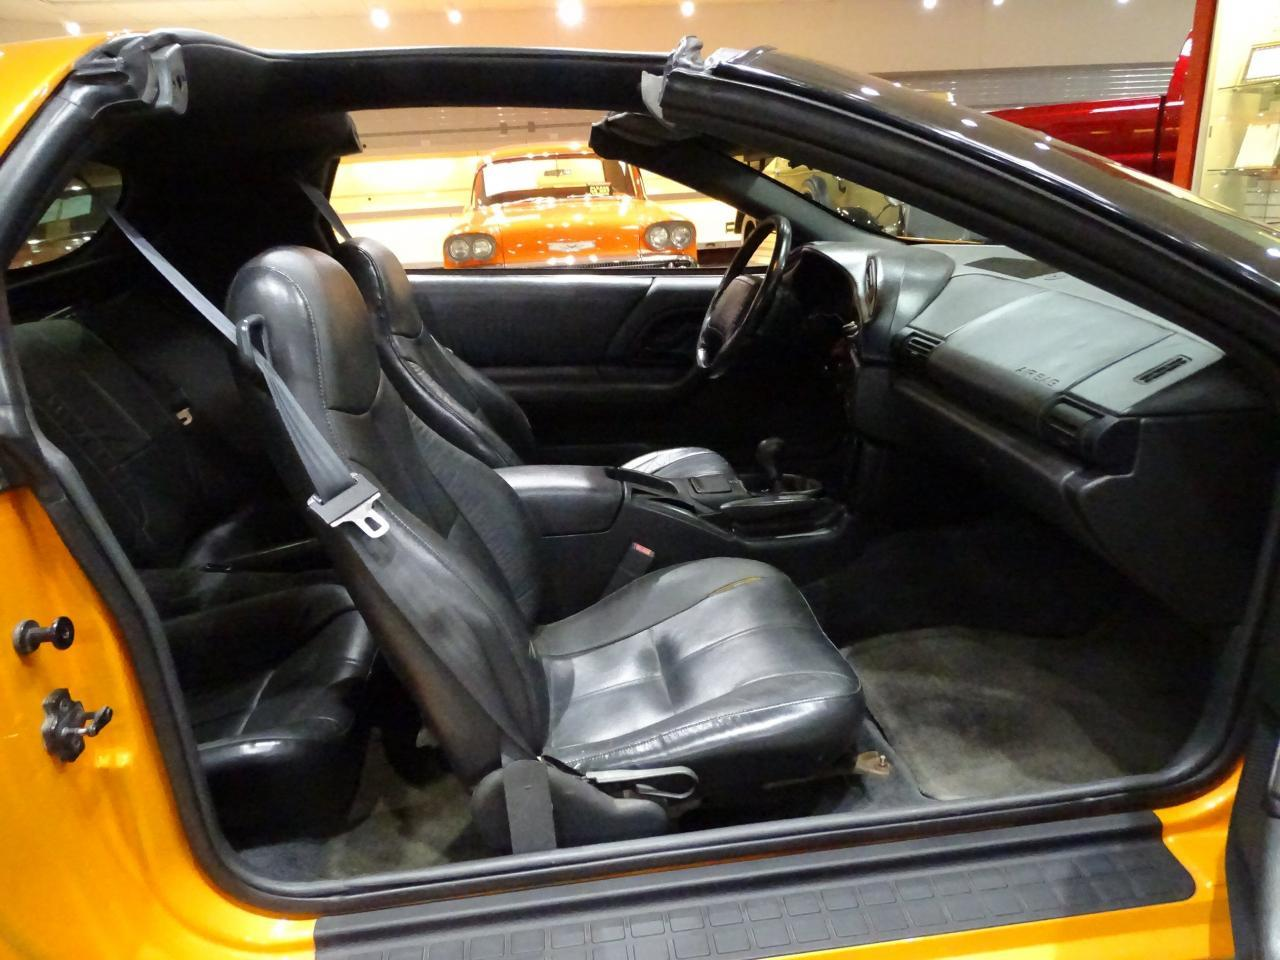 Large Picture of '96 Chevrolet Camaro located in Illinois Offered by Gateway Classic Cars - St. Louis - L8EI